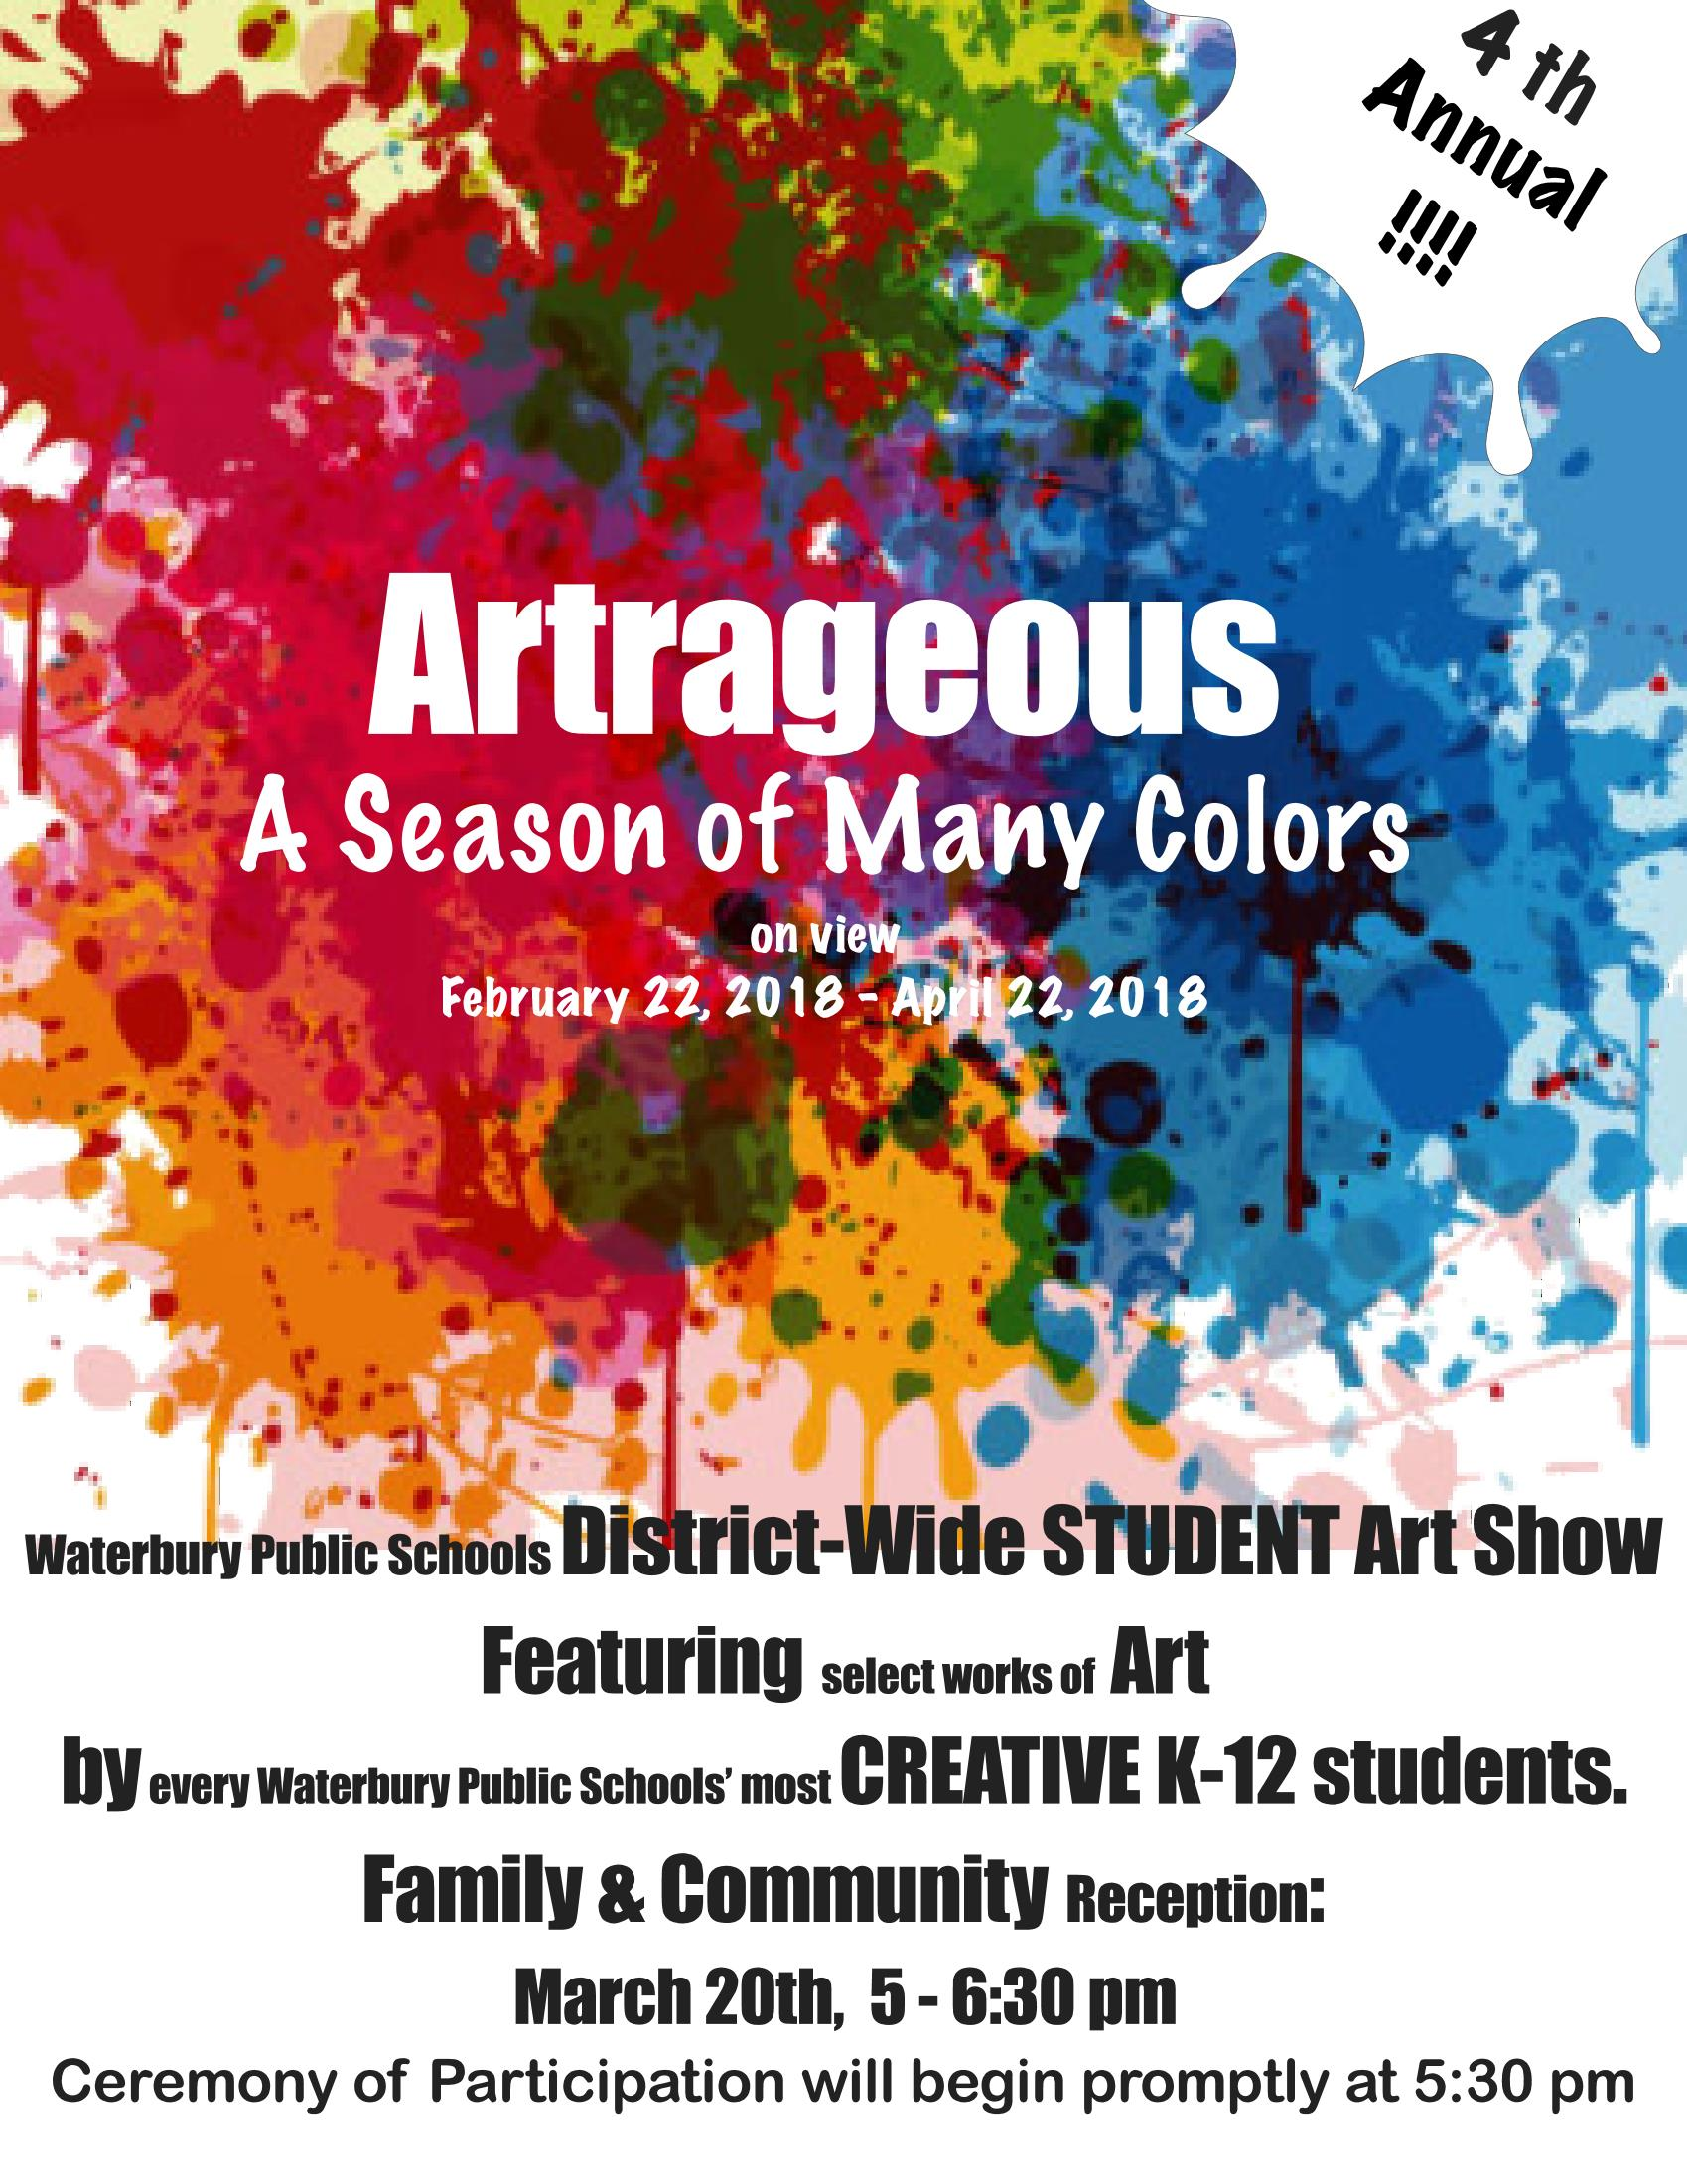 flyer for student art exhibit and reception